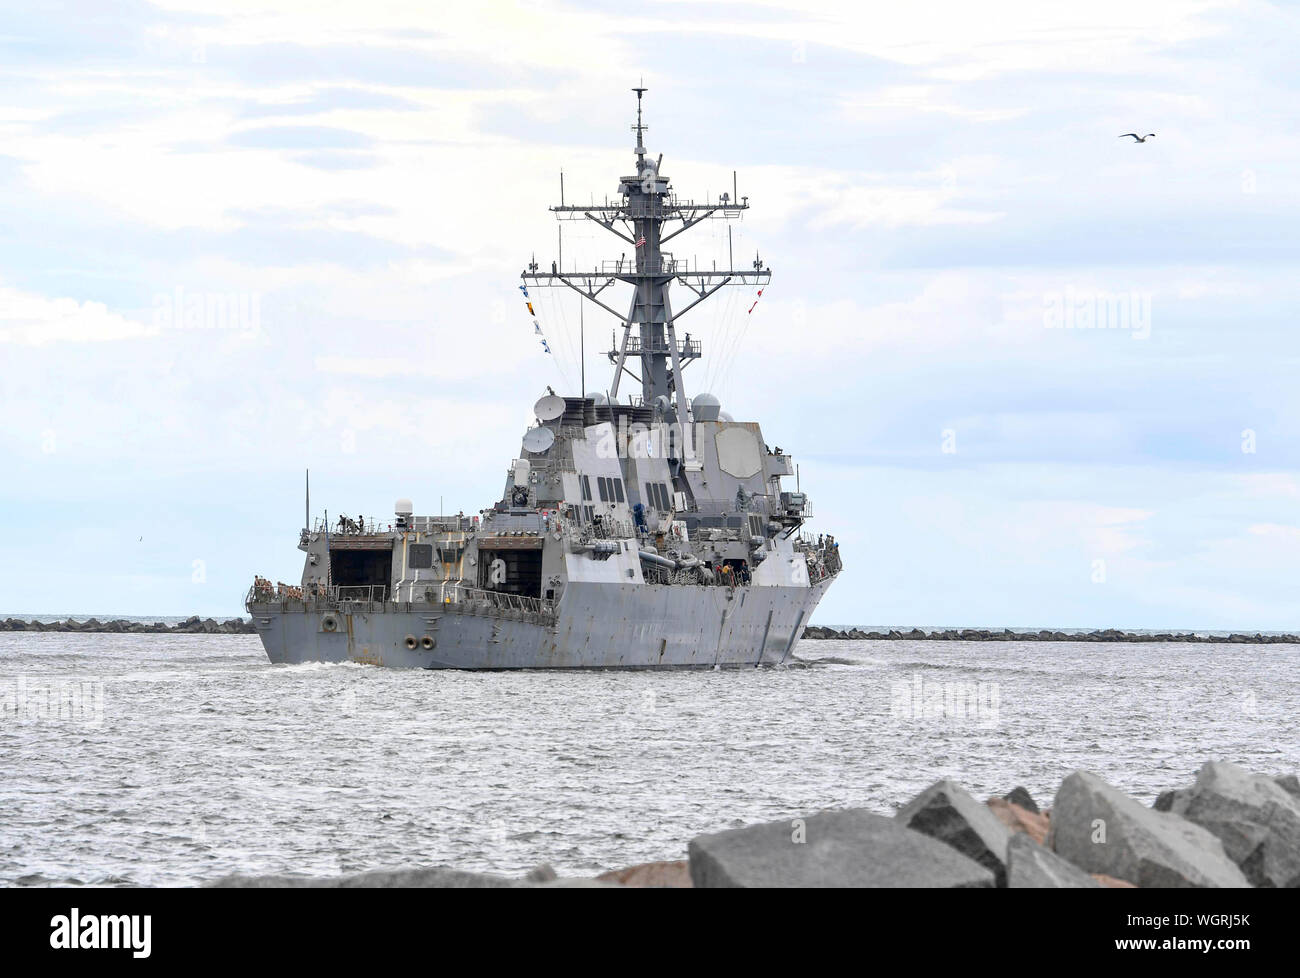 190830-N-DA434-139  JACKSONVILLE, Fla. (Aug. 30, 2019) The Arleigh Burke-class guided-missile destroyer USS Lassen (DDG 82) gets underway from Naval Station Mayport as Commander, U.S. 4th Fleet orders all U.S. Navy ships homeported in the area to sortie ahead of Hurricane Dorian, which is forecasted to bring high winds and heavy rain to the East Coast. Ships are being directed to areas in the Atlantic where they are best postured for storm avoidance.   (U.S. Navy photo by Mass Communication Specialist 3rd Class Alana Langdon/Released) Stock Photo